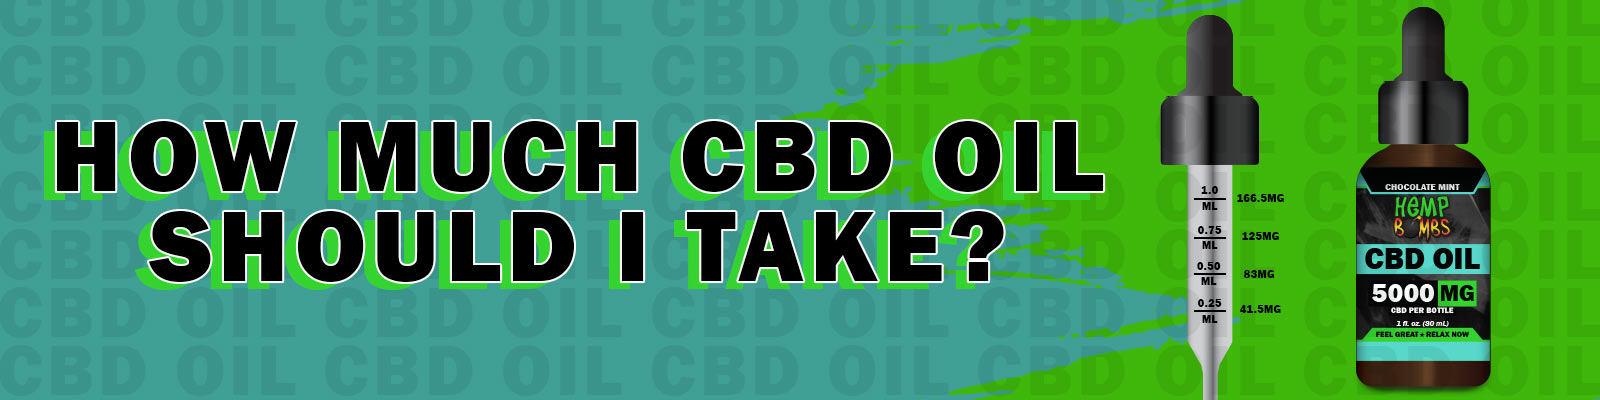 How Much CBD Oil Should I Take for Sleep, Stress